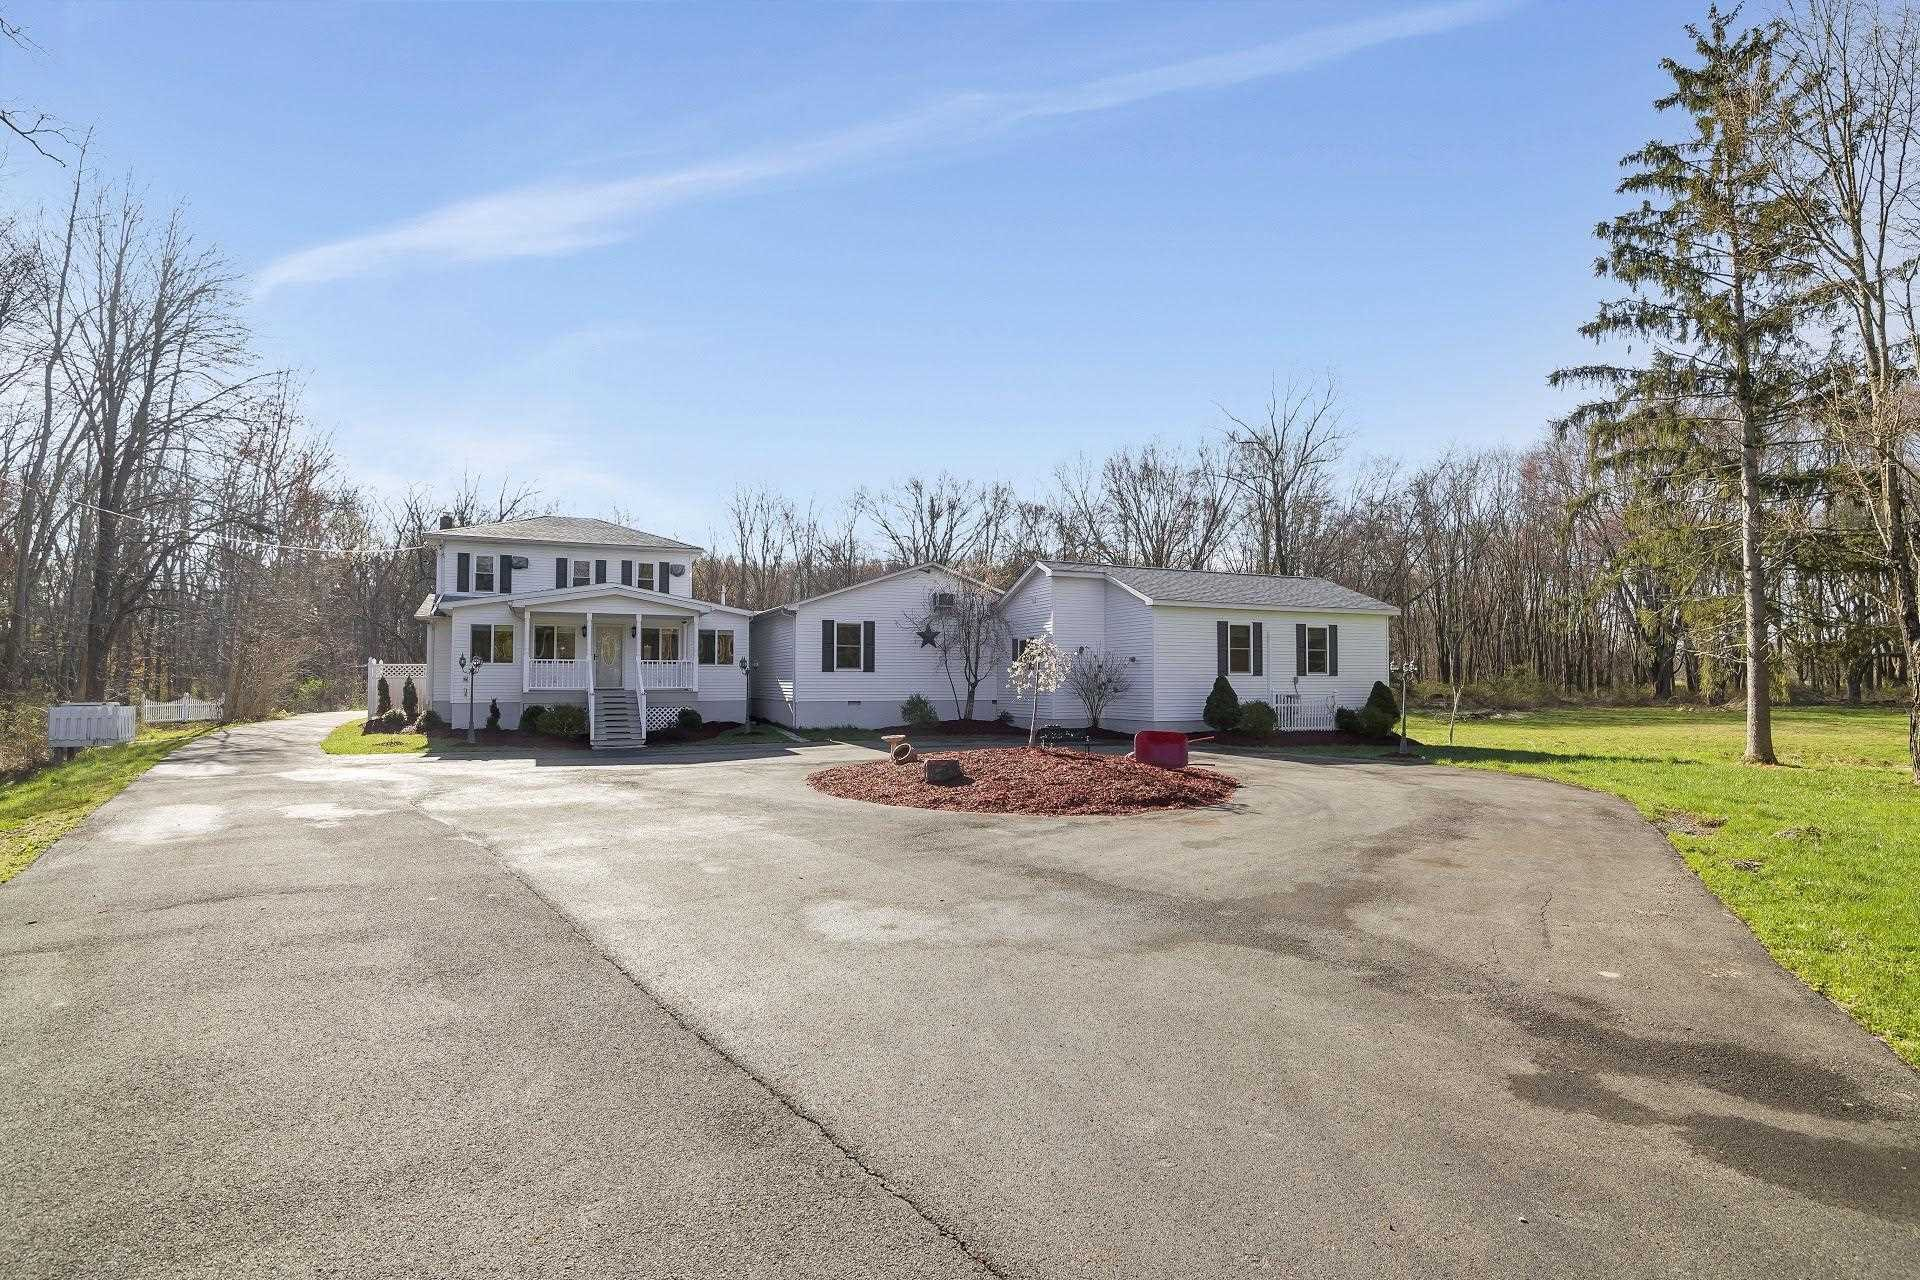 Single Family Home for Sale at 532 SPRINGTOWN Road 532 SPRINGTOWN Road Rosendale, New York 12561 United States